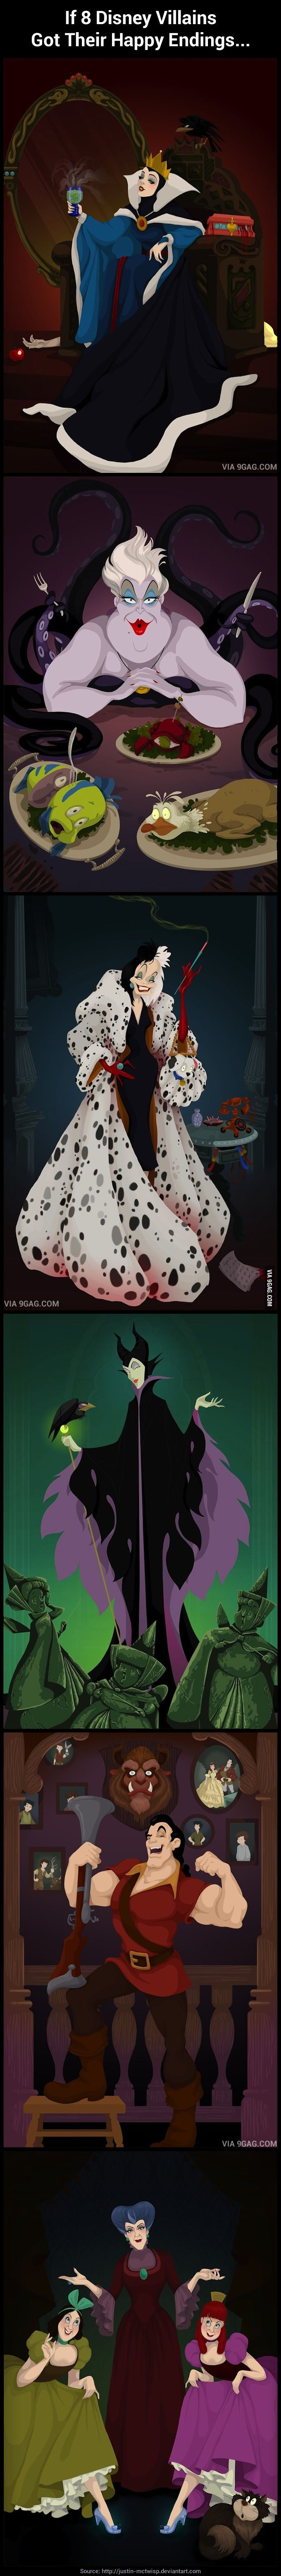 If Disney Villains Got Their Happy Endings (I know...it's a little morbid, but such can be my humor.)